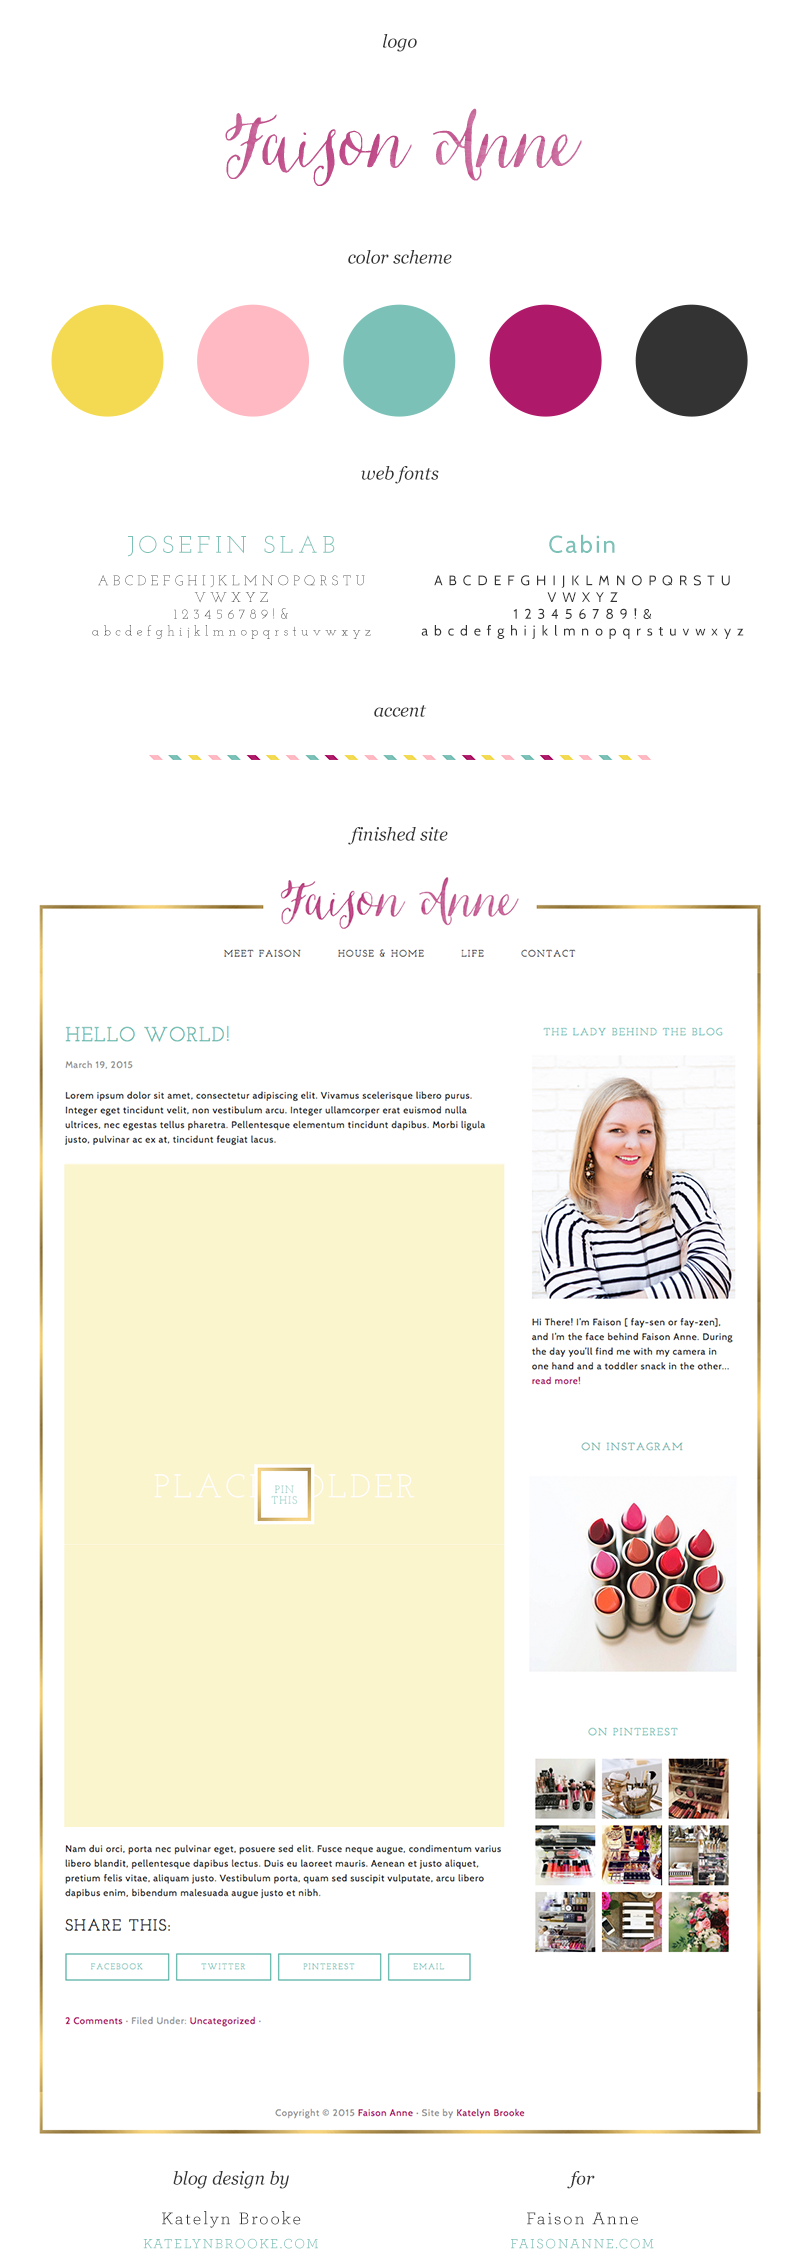 Blog design for Faison Anne by Katelyn Brooke || katelynbrooke.com